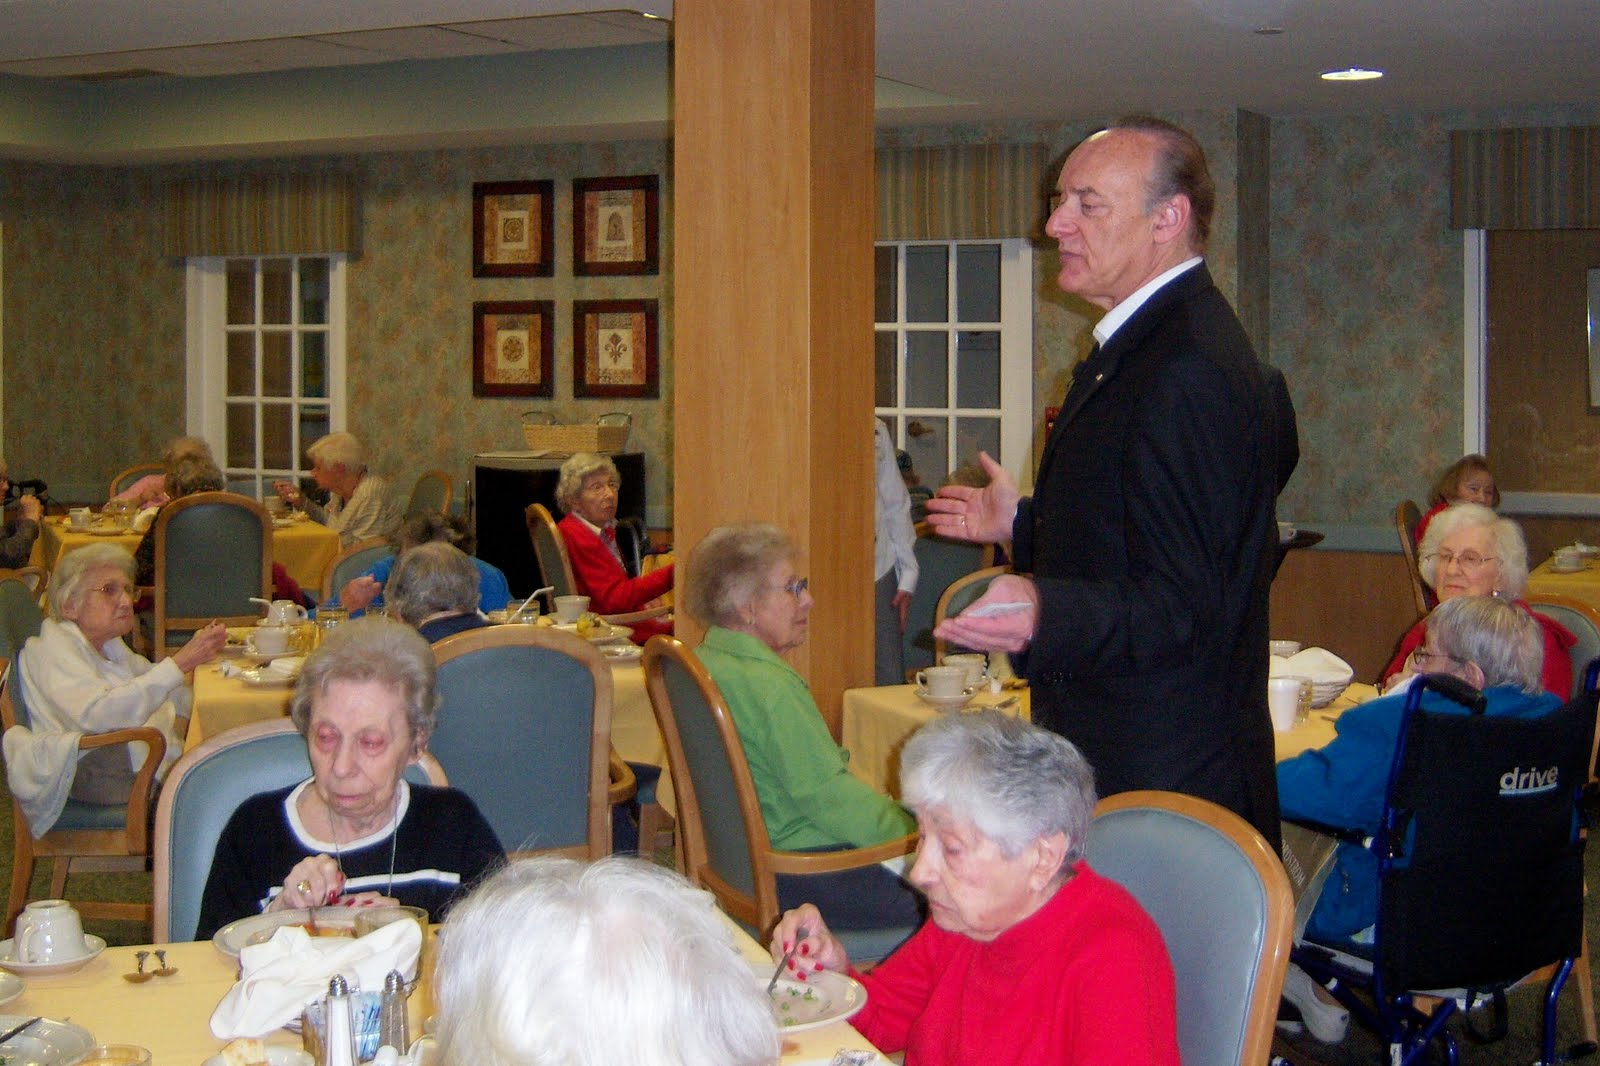 Stone Gardens Beachwood Ohio Stone gardens october 2010 lee fisher the lt governor of ohio and candidate for the u s senate made a campaign stop at stone gardens today he came during lunch and went from workwithnaturefo